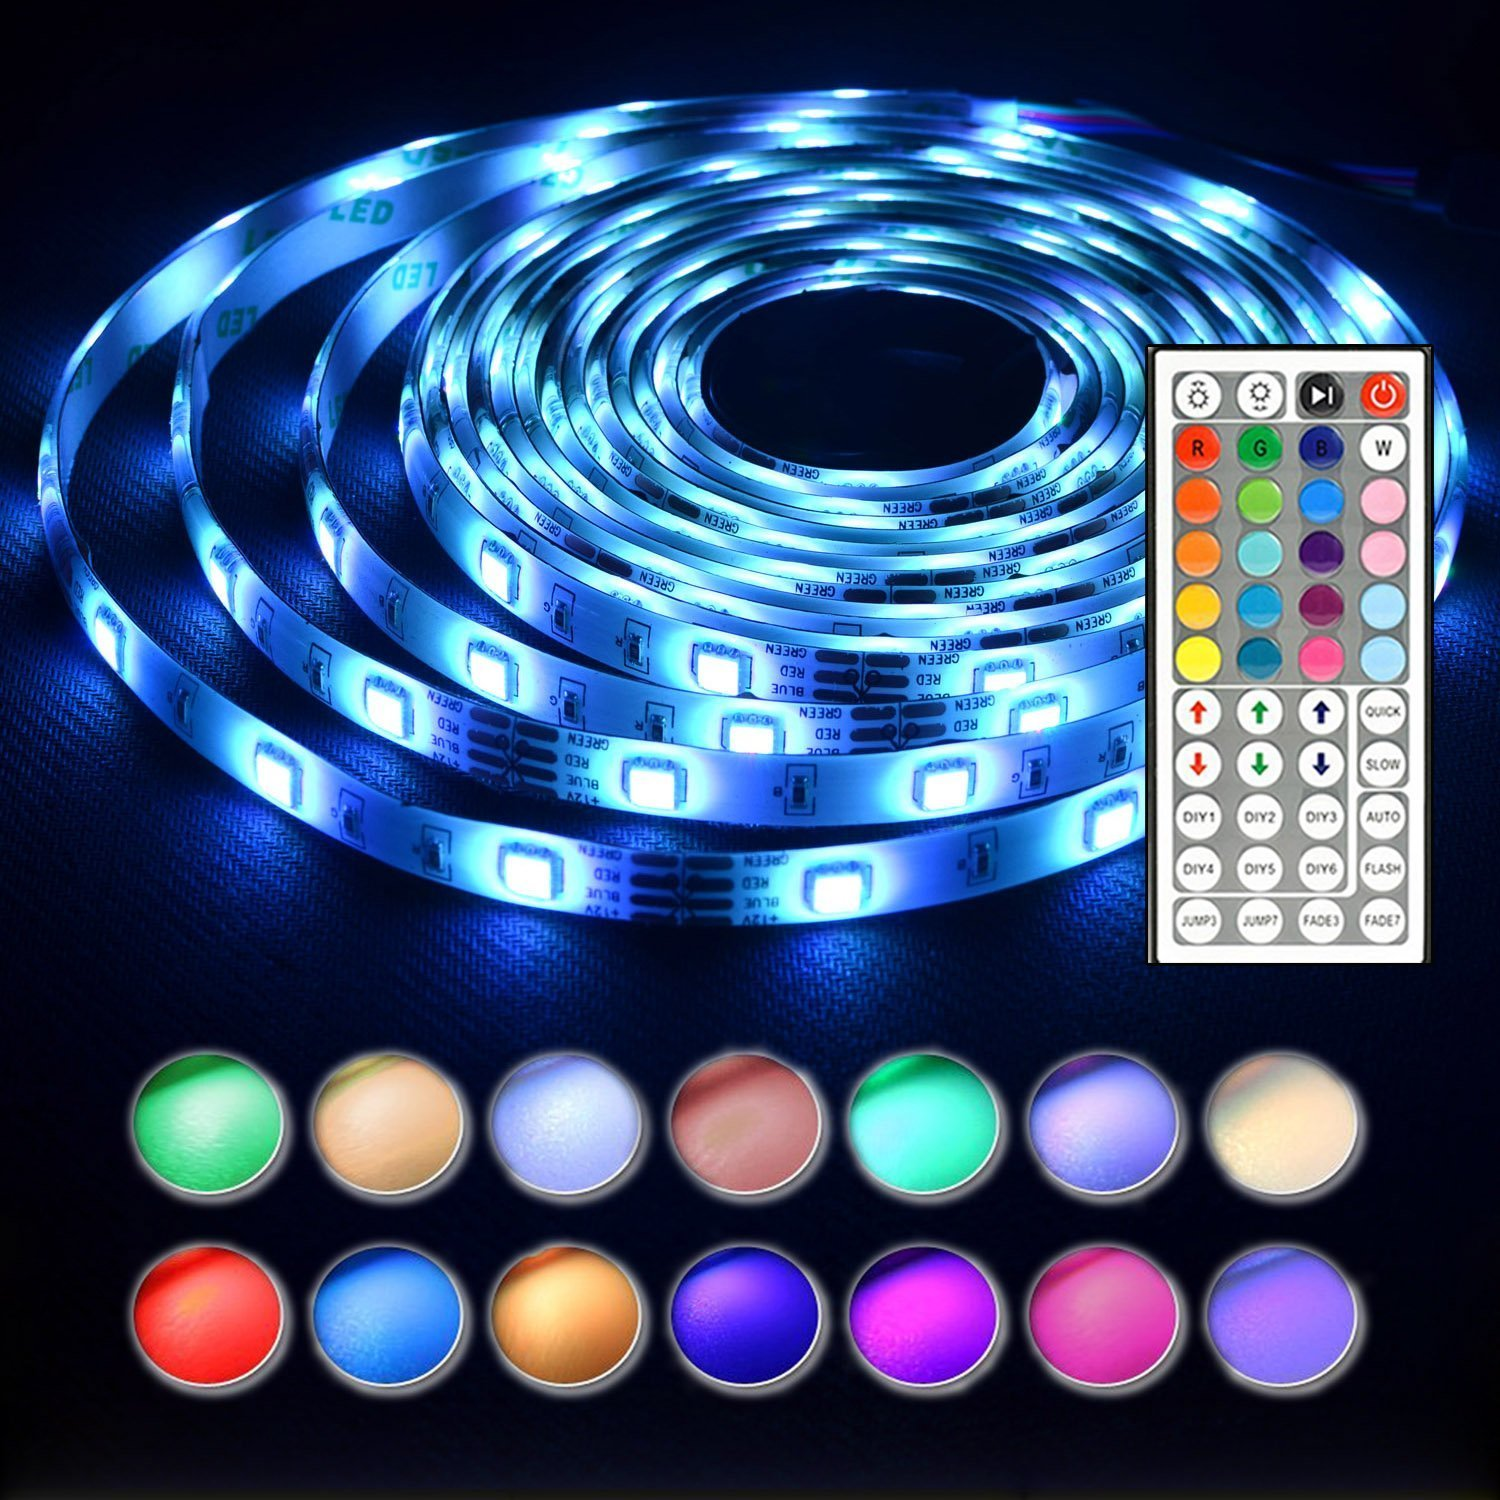 Design Light Ropes And Strings rope lights amazon com len led strip 16 4 ft 5m waterproof 150leds 5050 rgb light complete kit